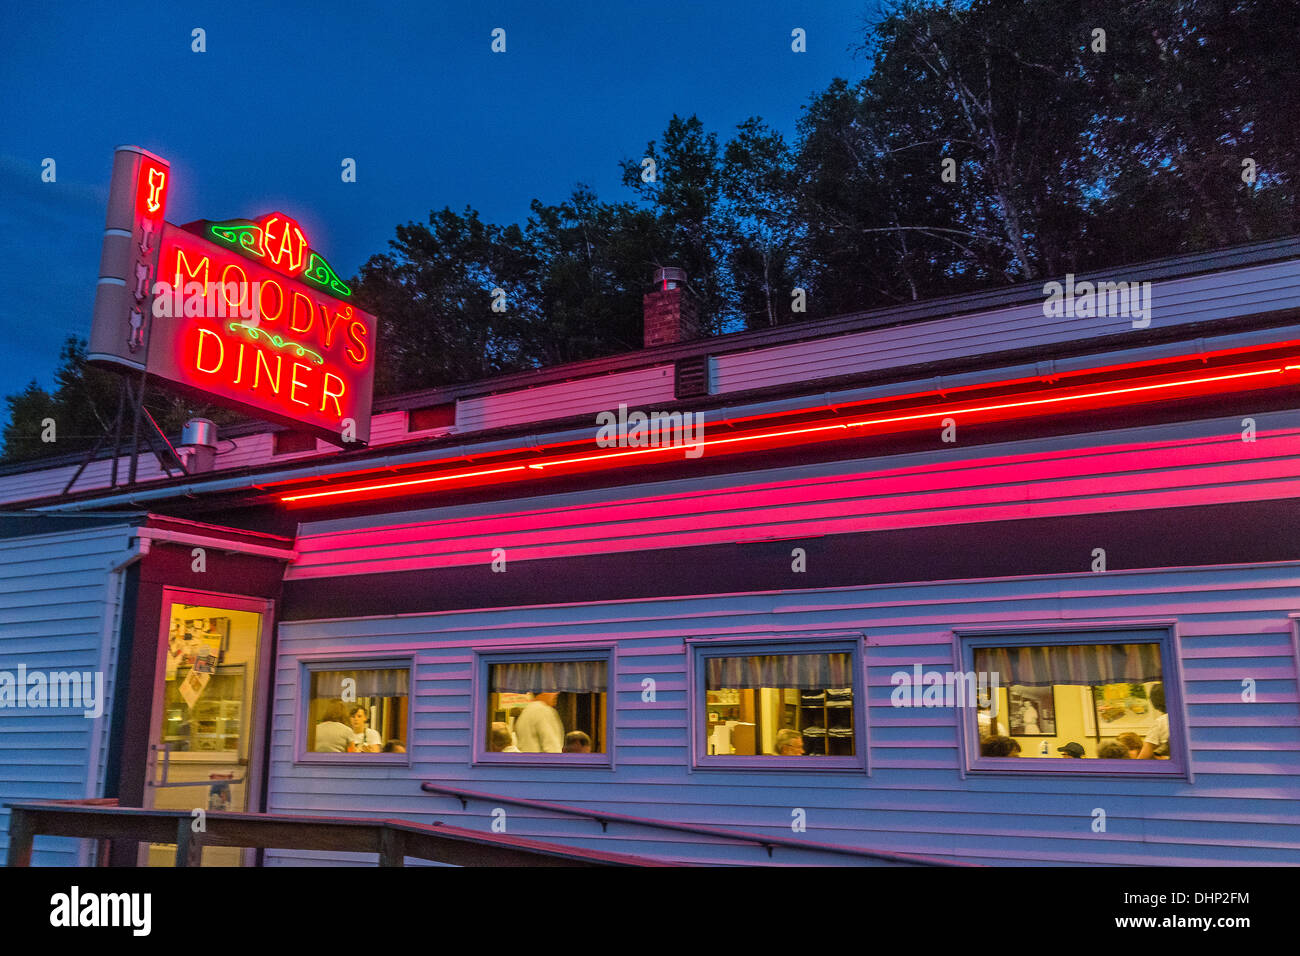 Neon sign at night for classic american diner moody 39 s for American classic diner